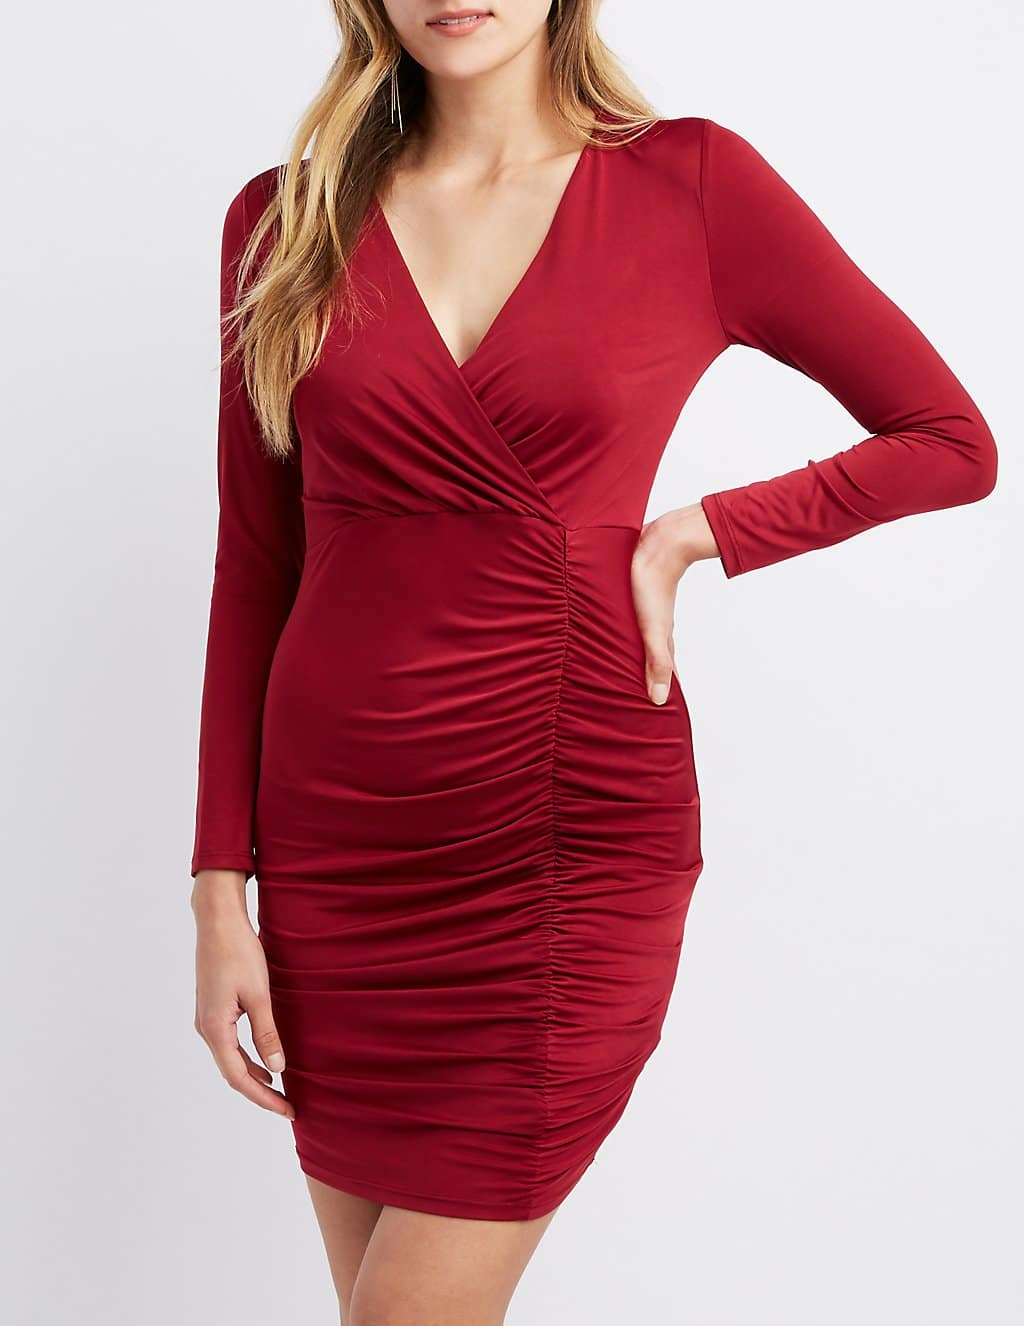 de8634fe7941 Charlotte Russe Clearance Sale: Surplice Ruched Bodycon Dress EXPIRED